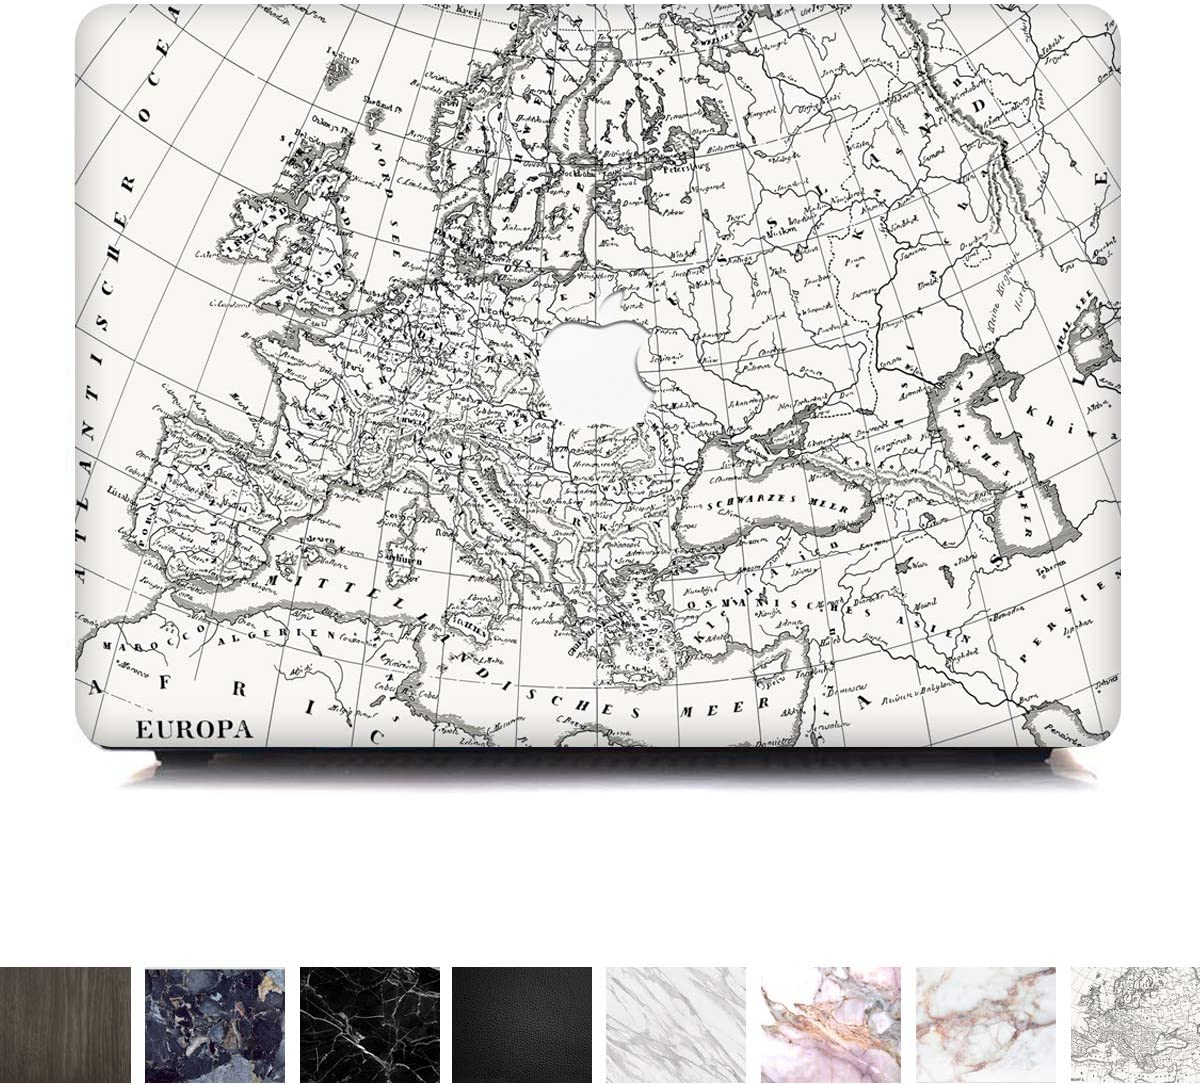 Koru Premium Vintage Map Vinyl Decal Skin Sticker Case Cover for MacBook Pro 15 inch Retina Without CD Drive (Model 1398)